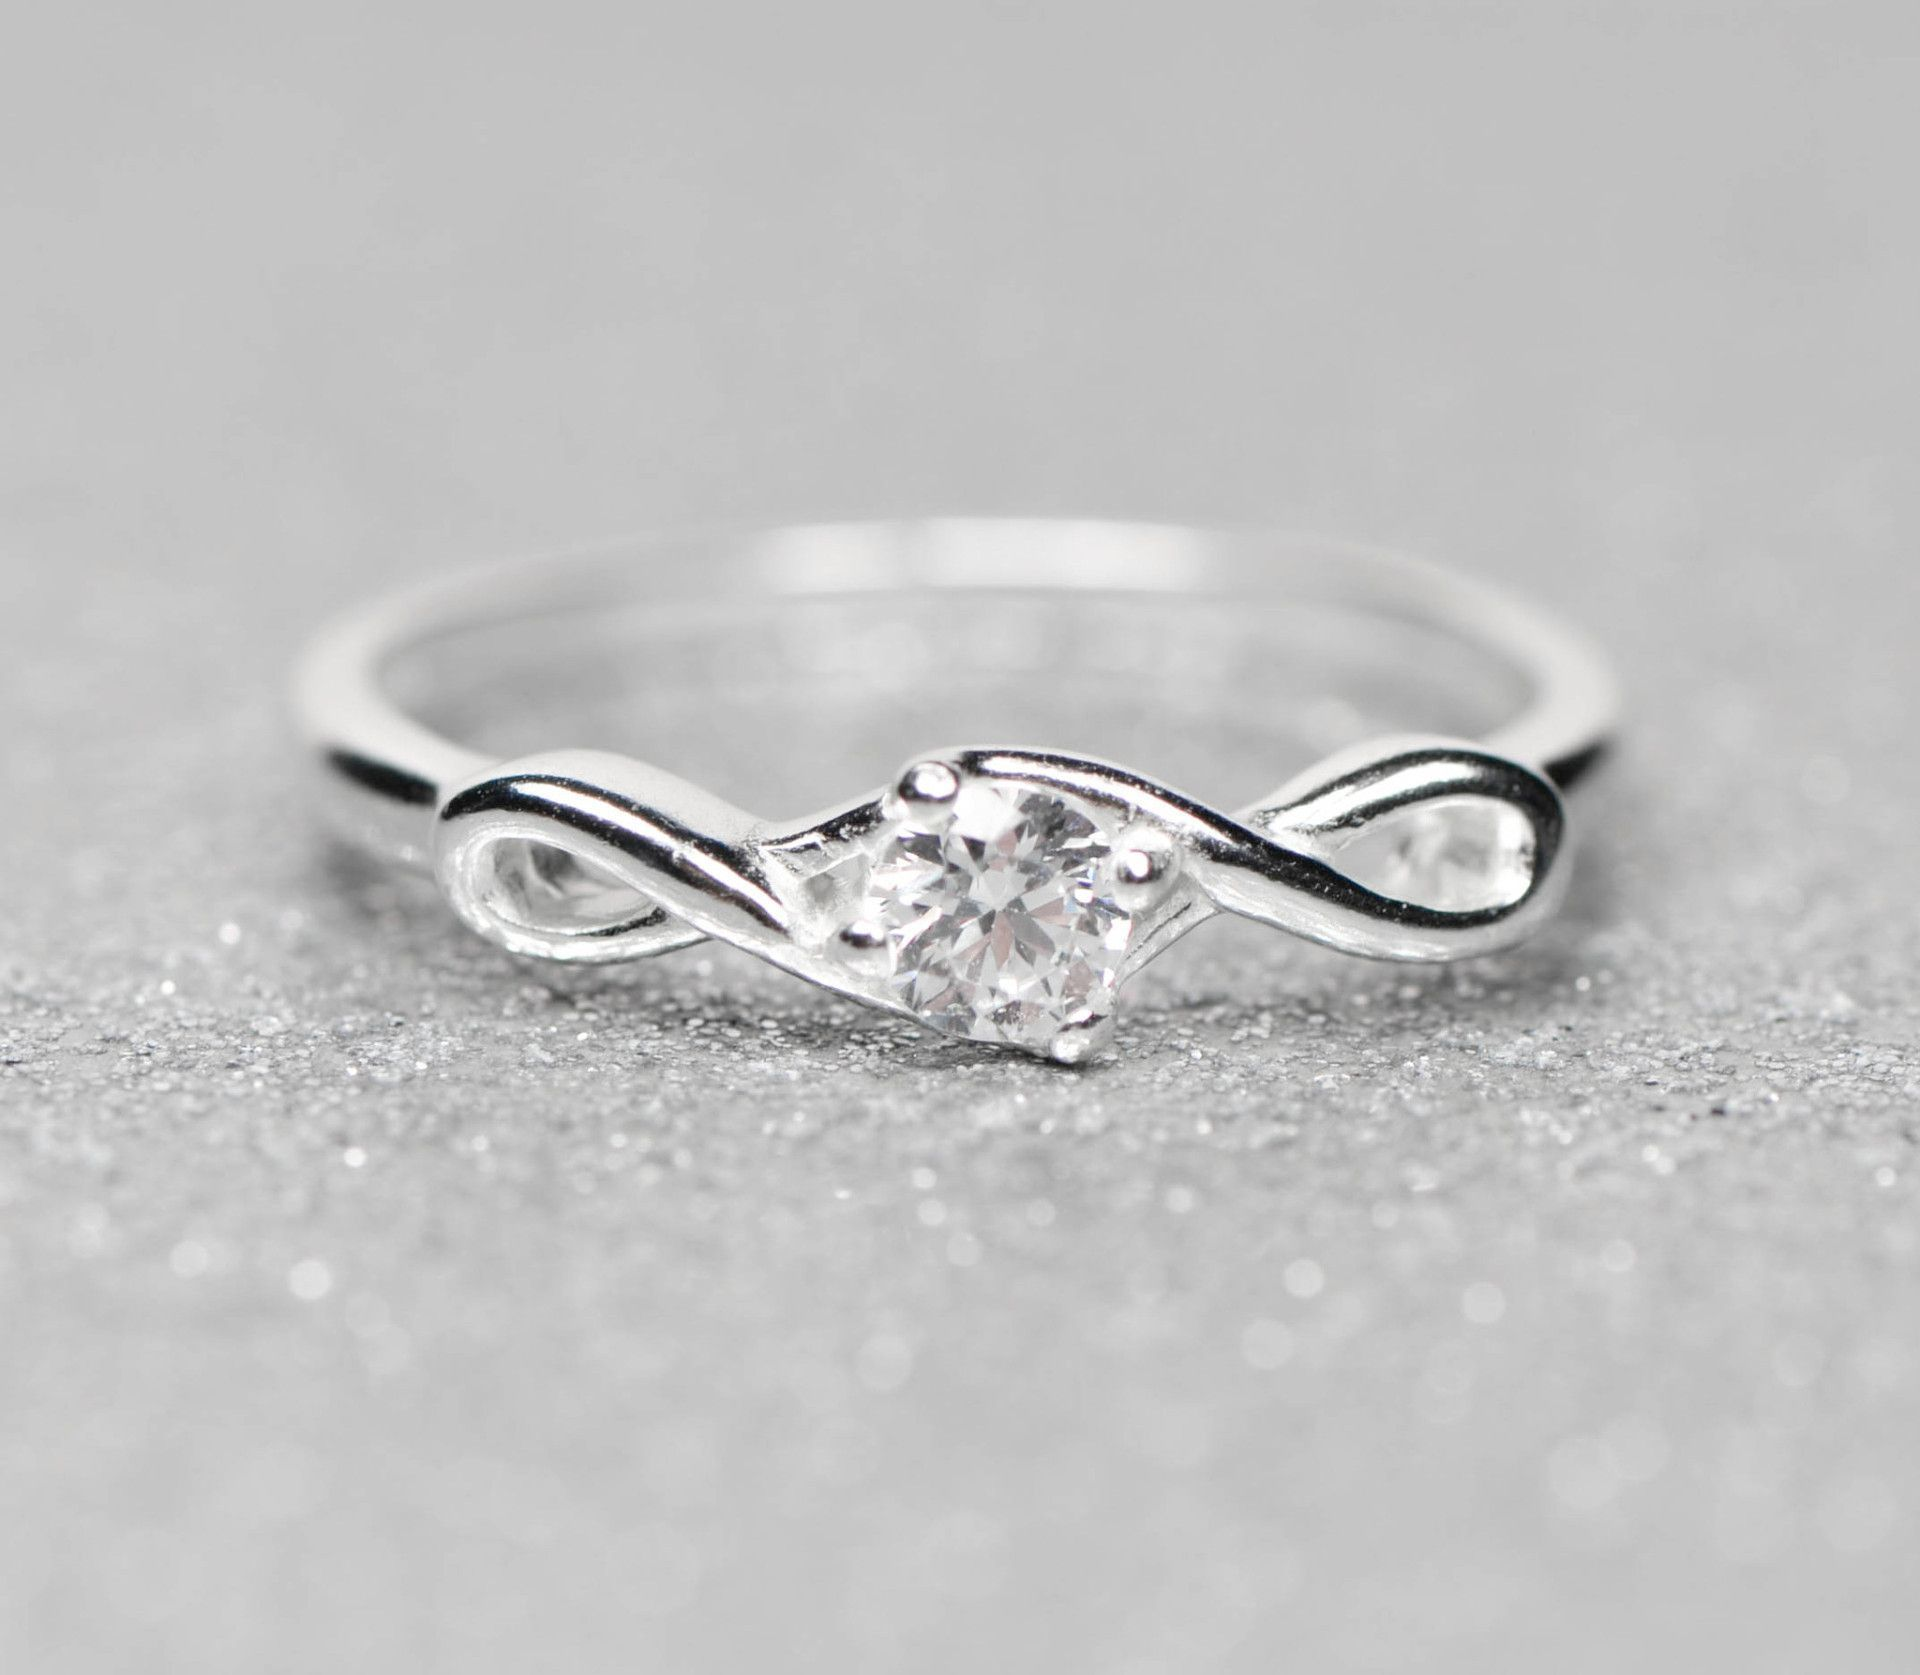 Sterling Silver Infinity Cz Promise Ring 6 Sparkle Jade 2: Jade Cross Wedding Bands At Websimilar.org